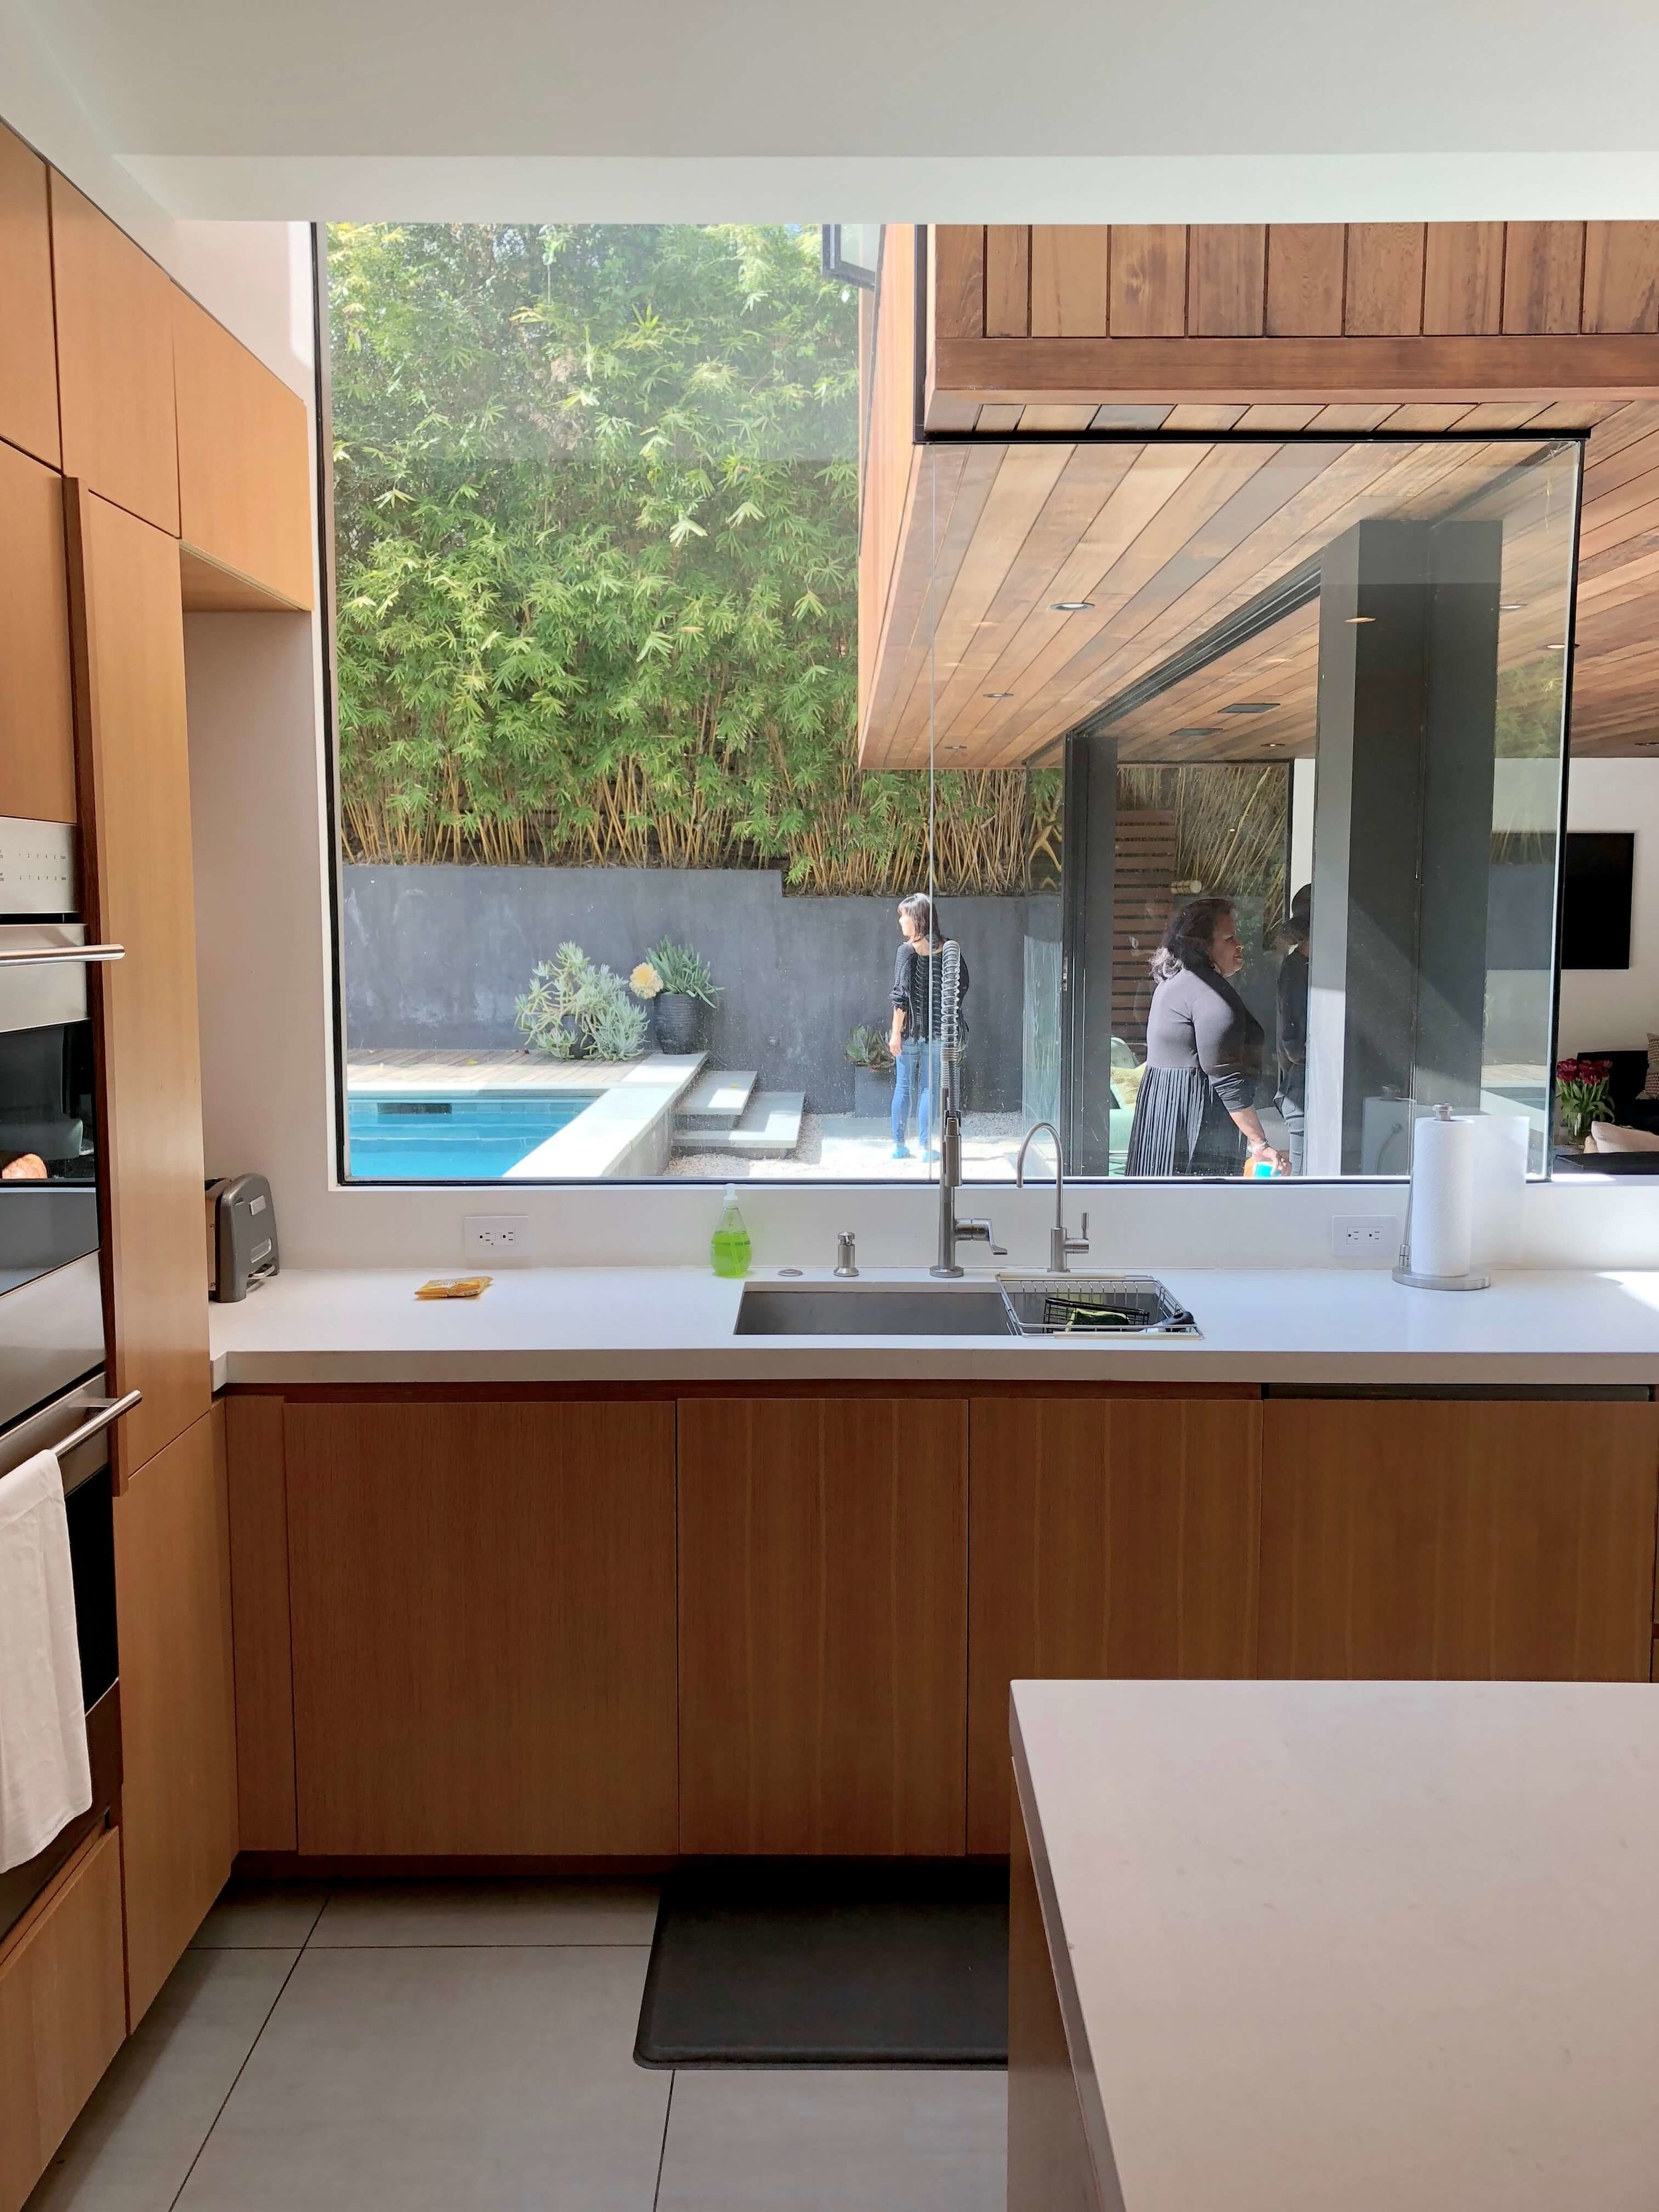 Wood cladding goes through the glass at window | Assembledge Architects, More on this  contemporary home here.